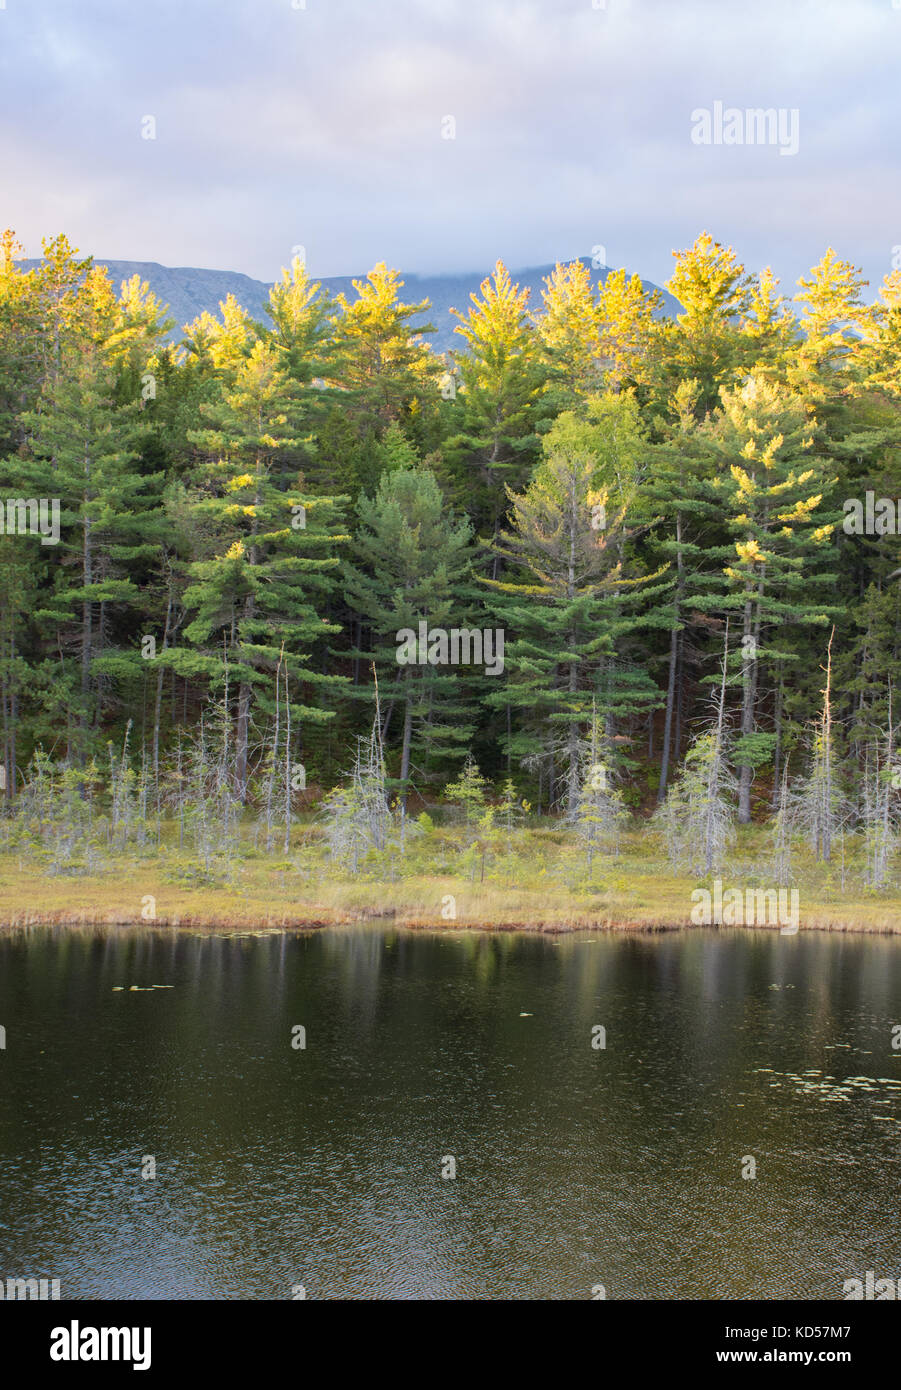 A pond in Baxter State Park in Maine with sunlit evergreen trees in the background and overcast skies above. Photographed - Stock Image